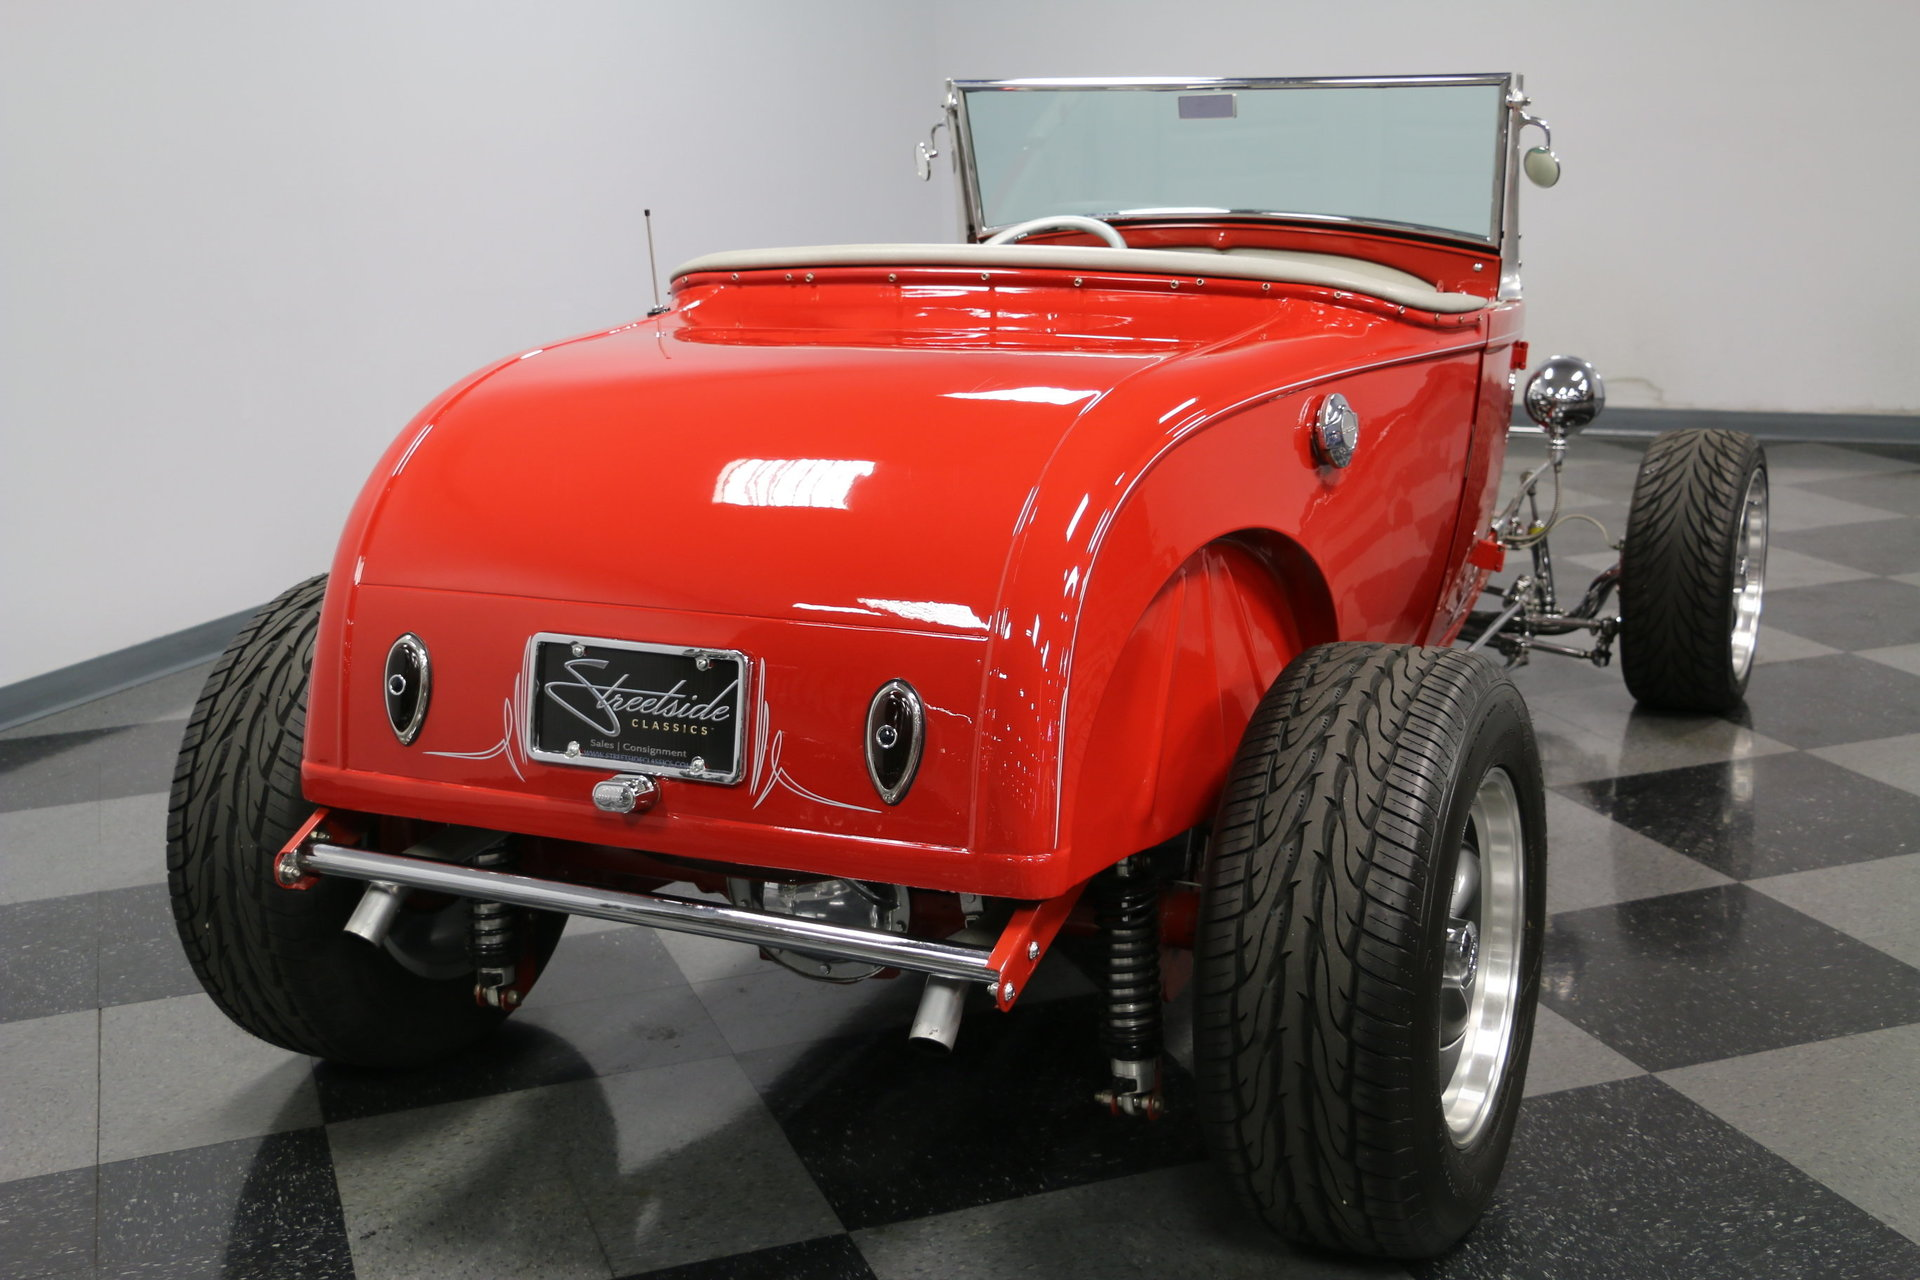 1929 Ford Model A Roadster for sale #85075 | MCG